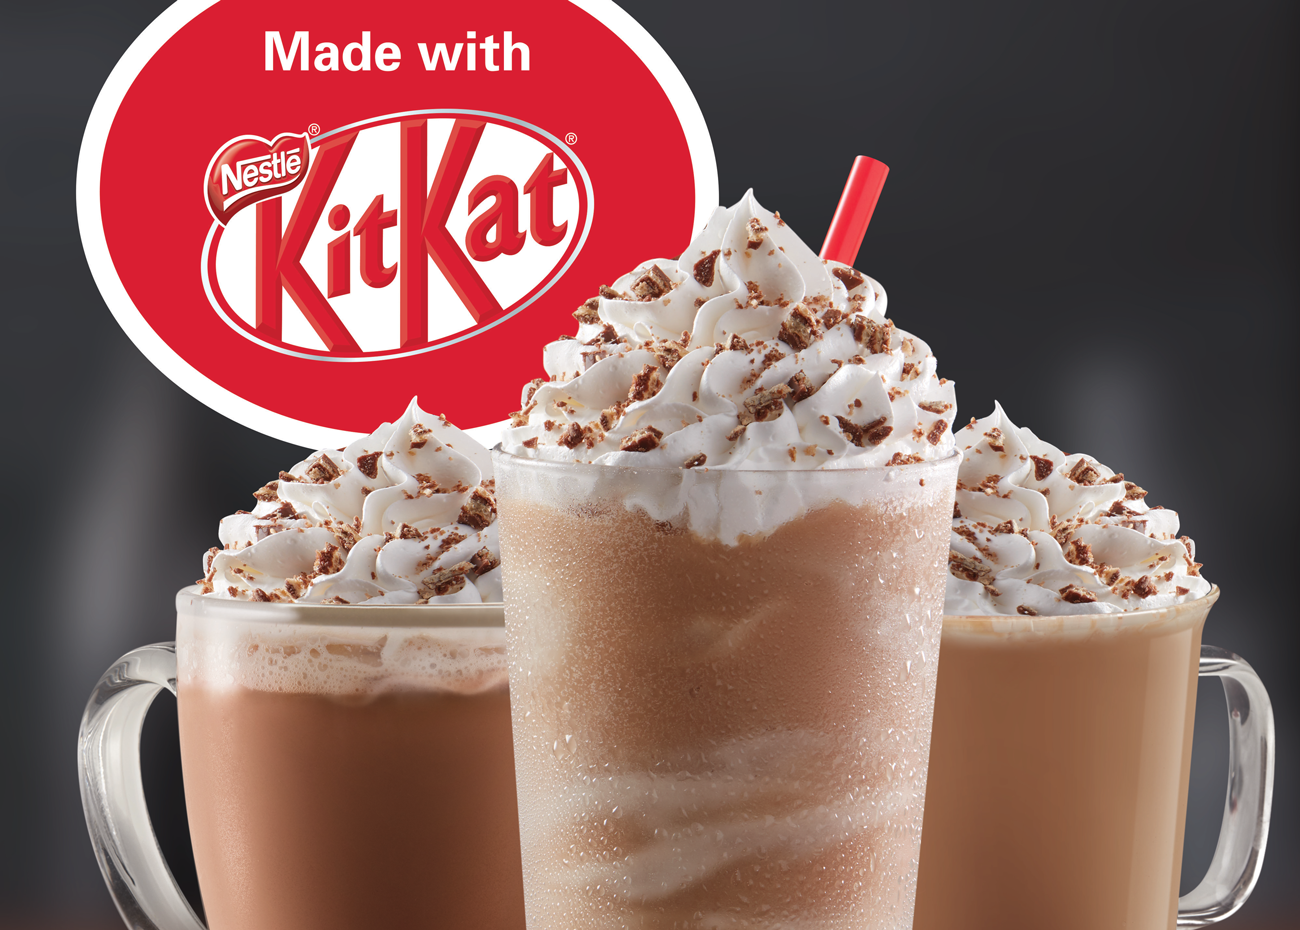 Tim Hortons Kit Kat Drinks